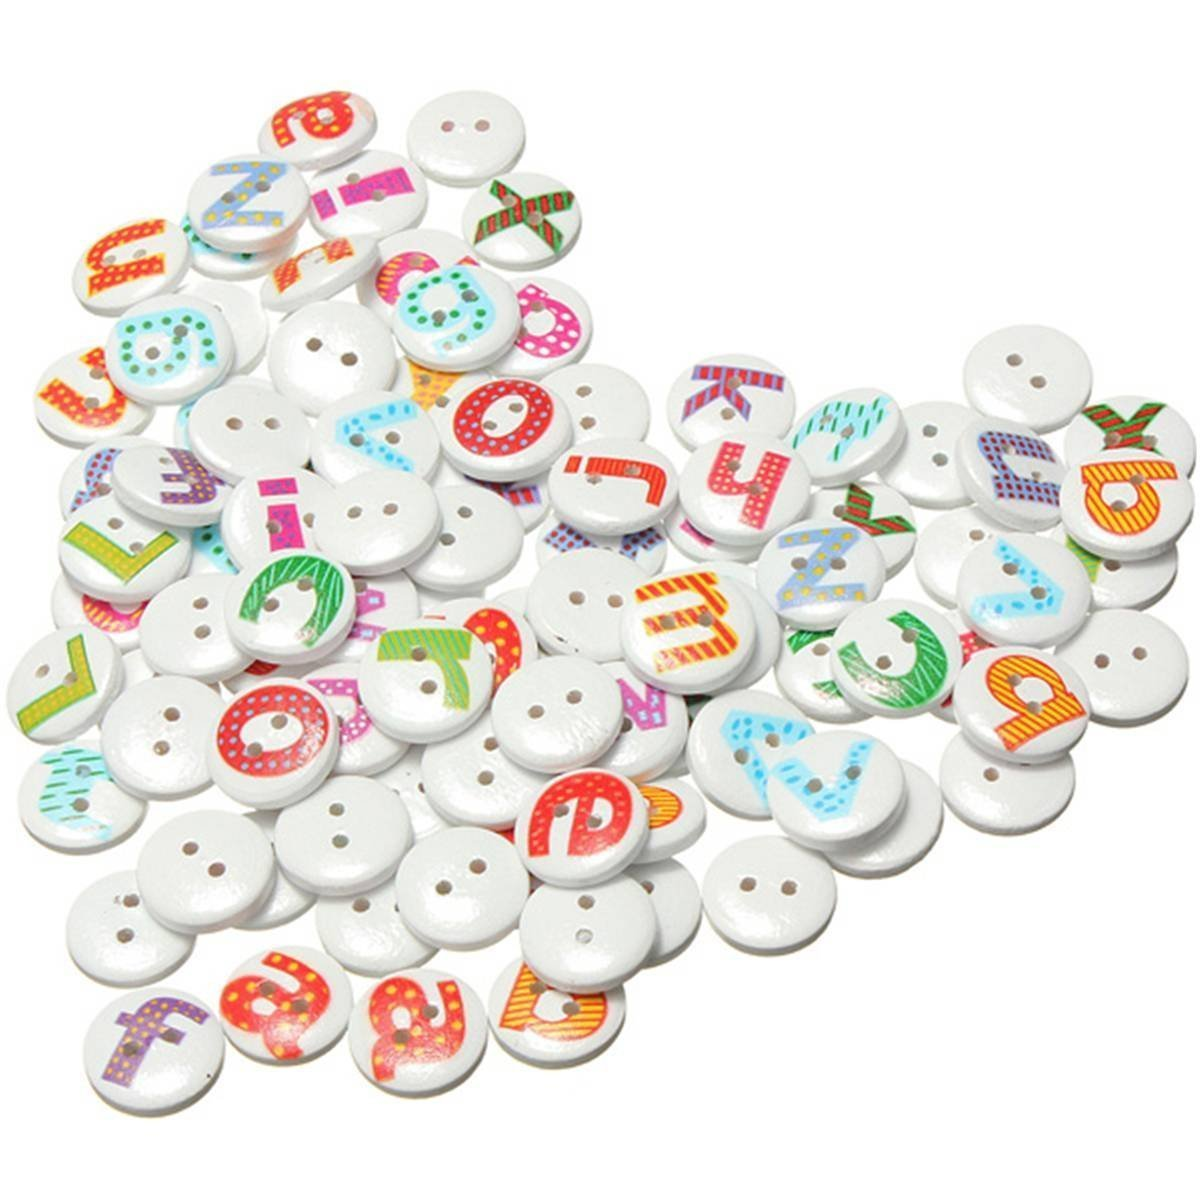 SODIAL(R) 100Pcs Mixed Painted Letter Alphabet Wooden Sewing Button Scrapbooking TRTA11A